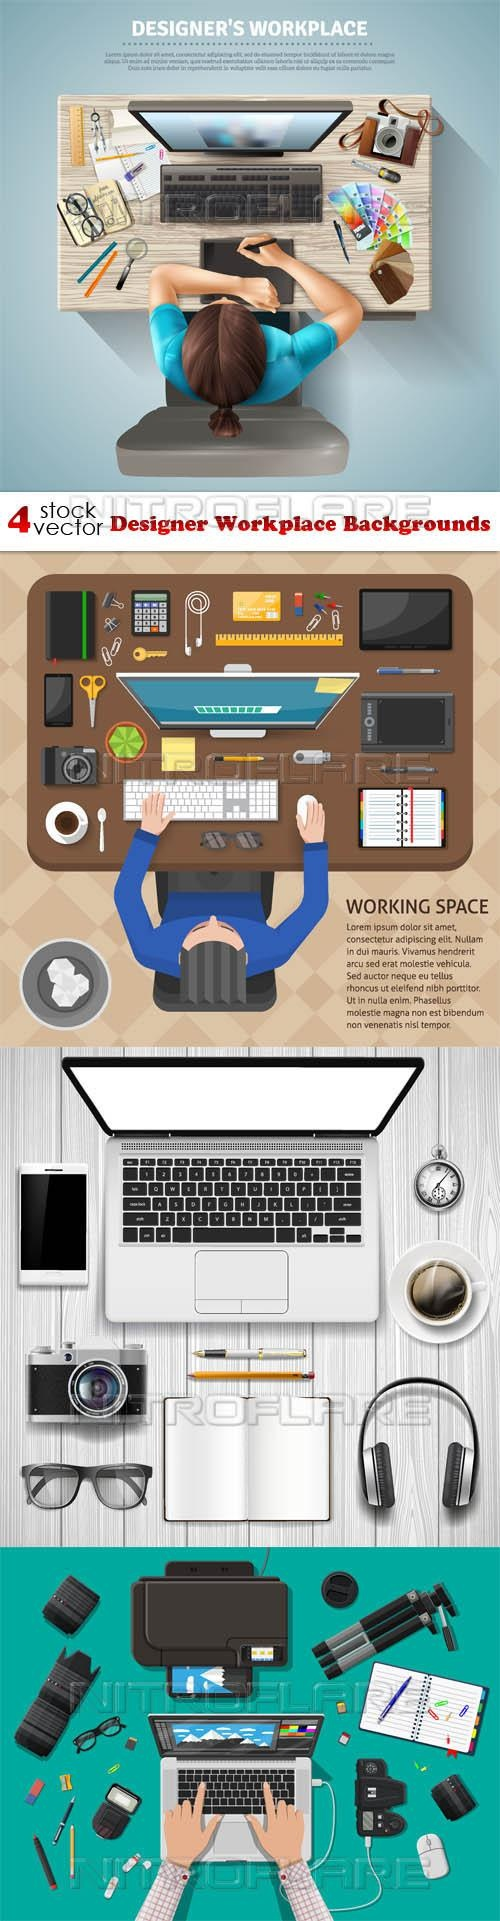 Designer Workplace Backgrounds ((aitff (8 files)